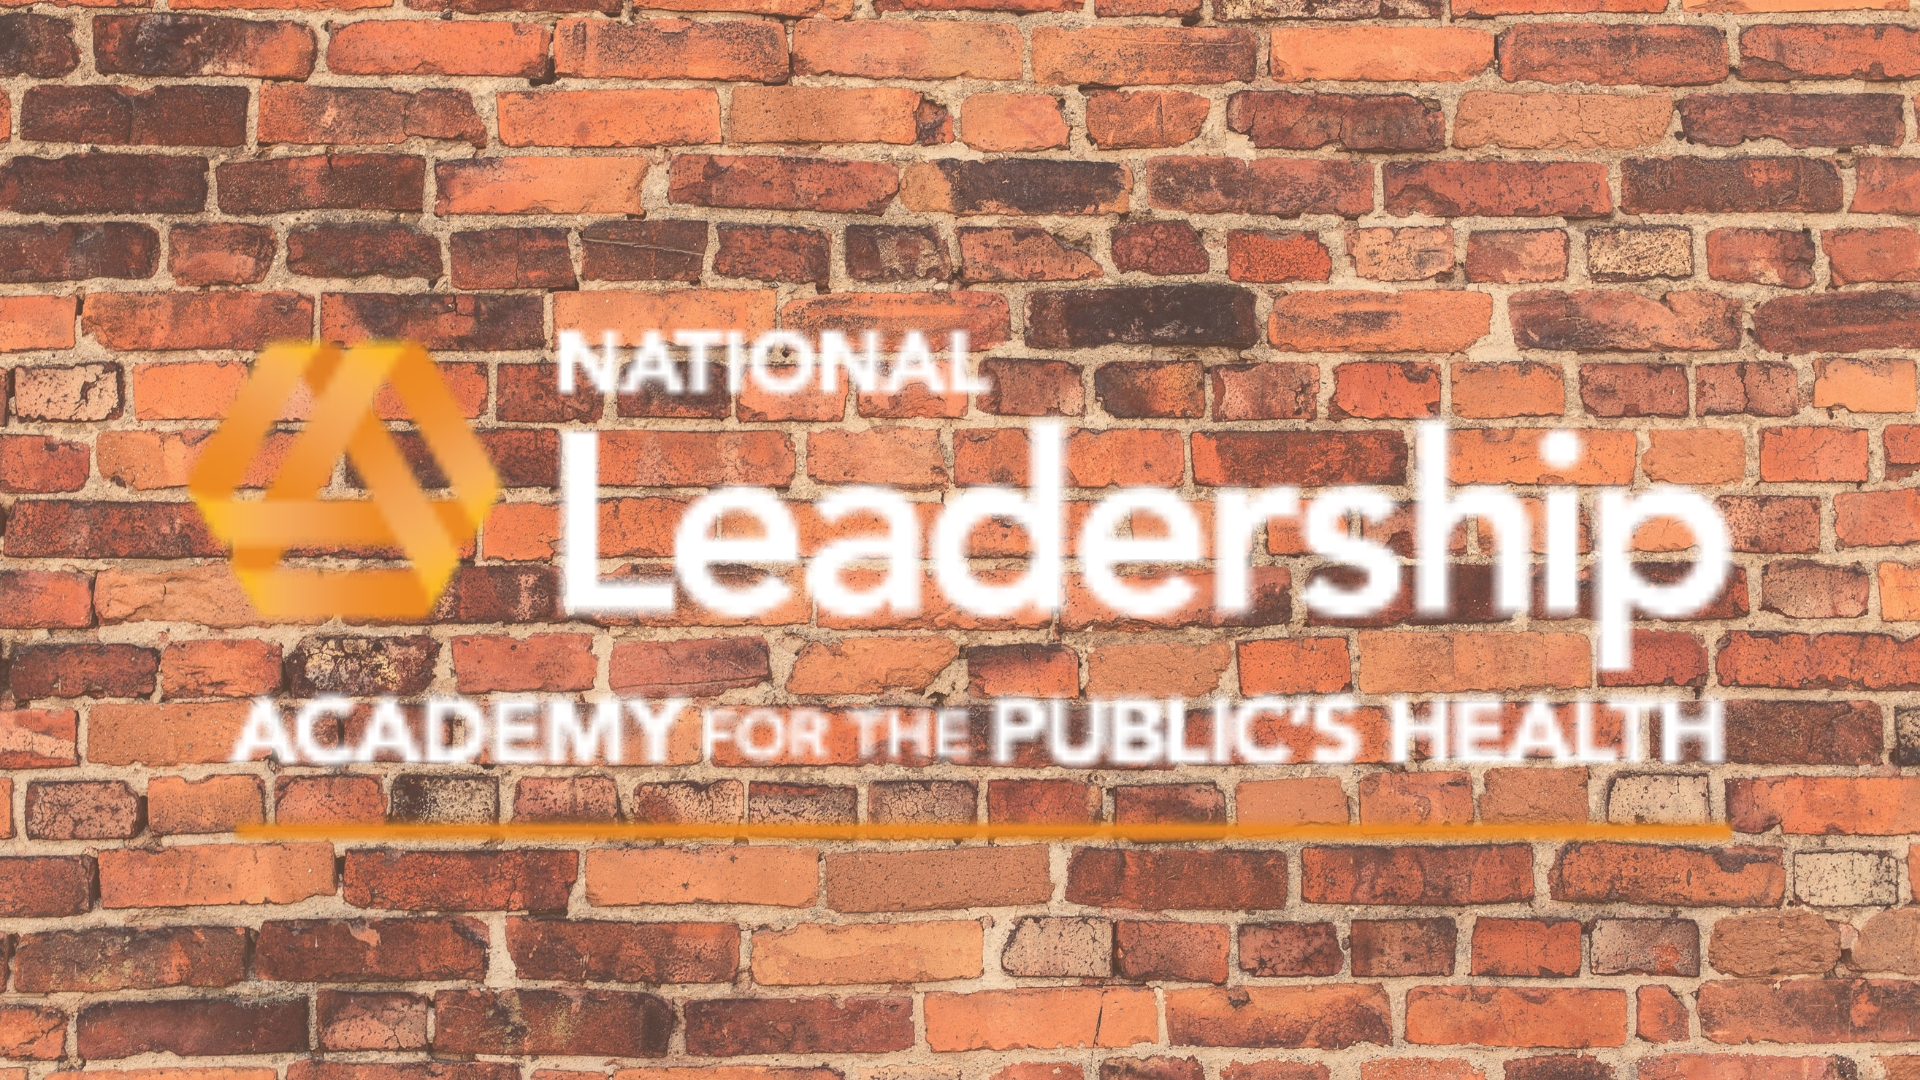 Pledge for Life Partnership Selected for National Public Health Leadership Program